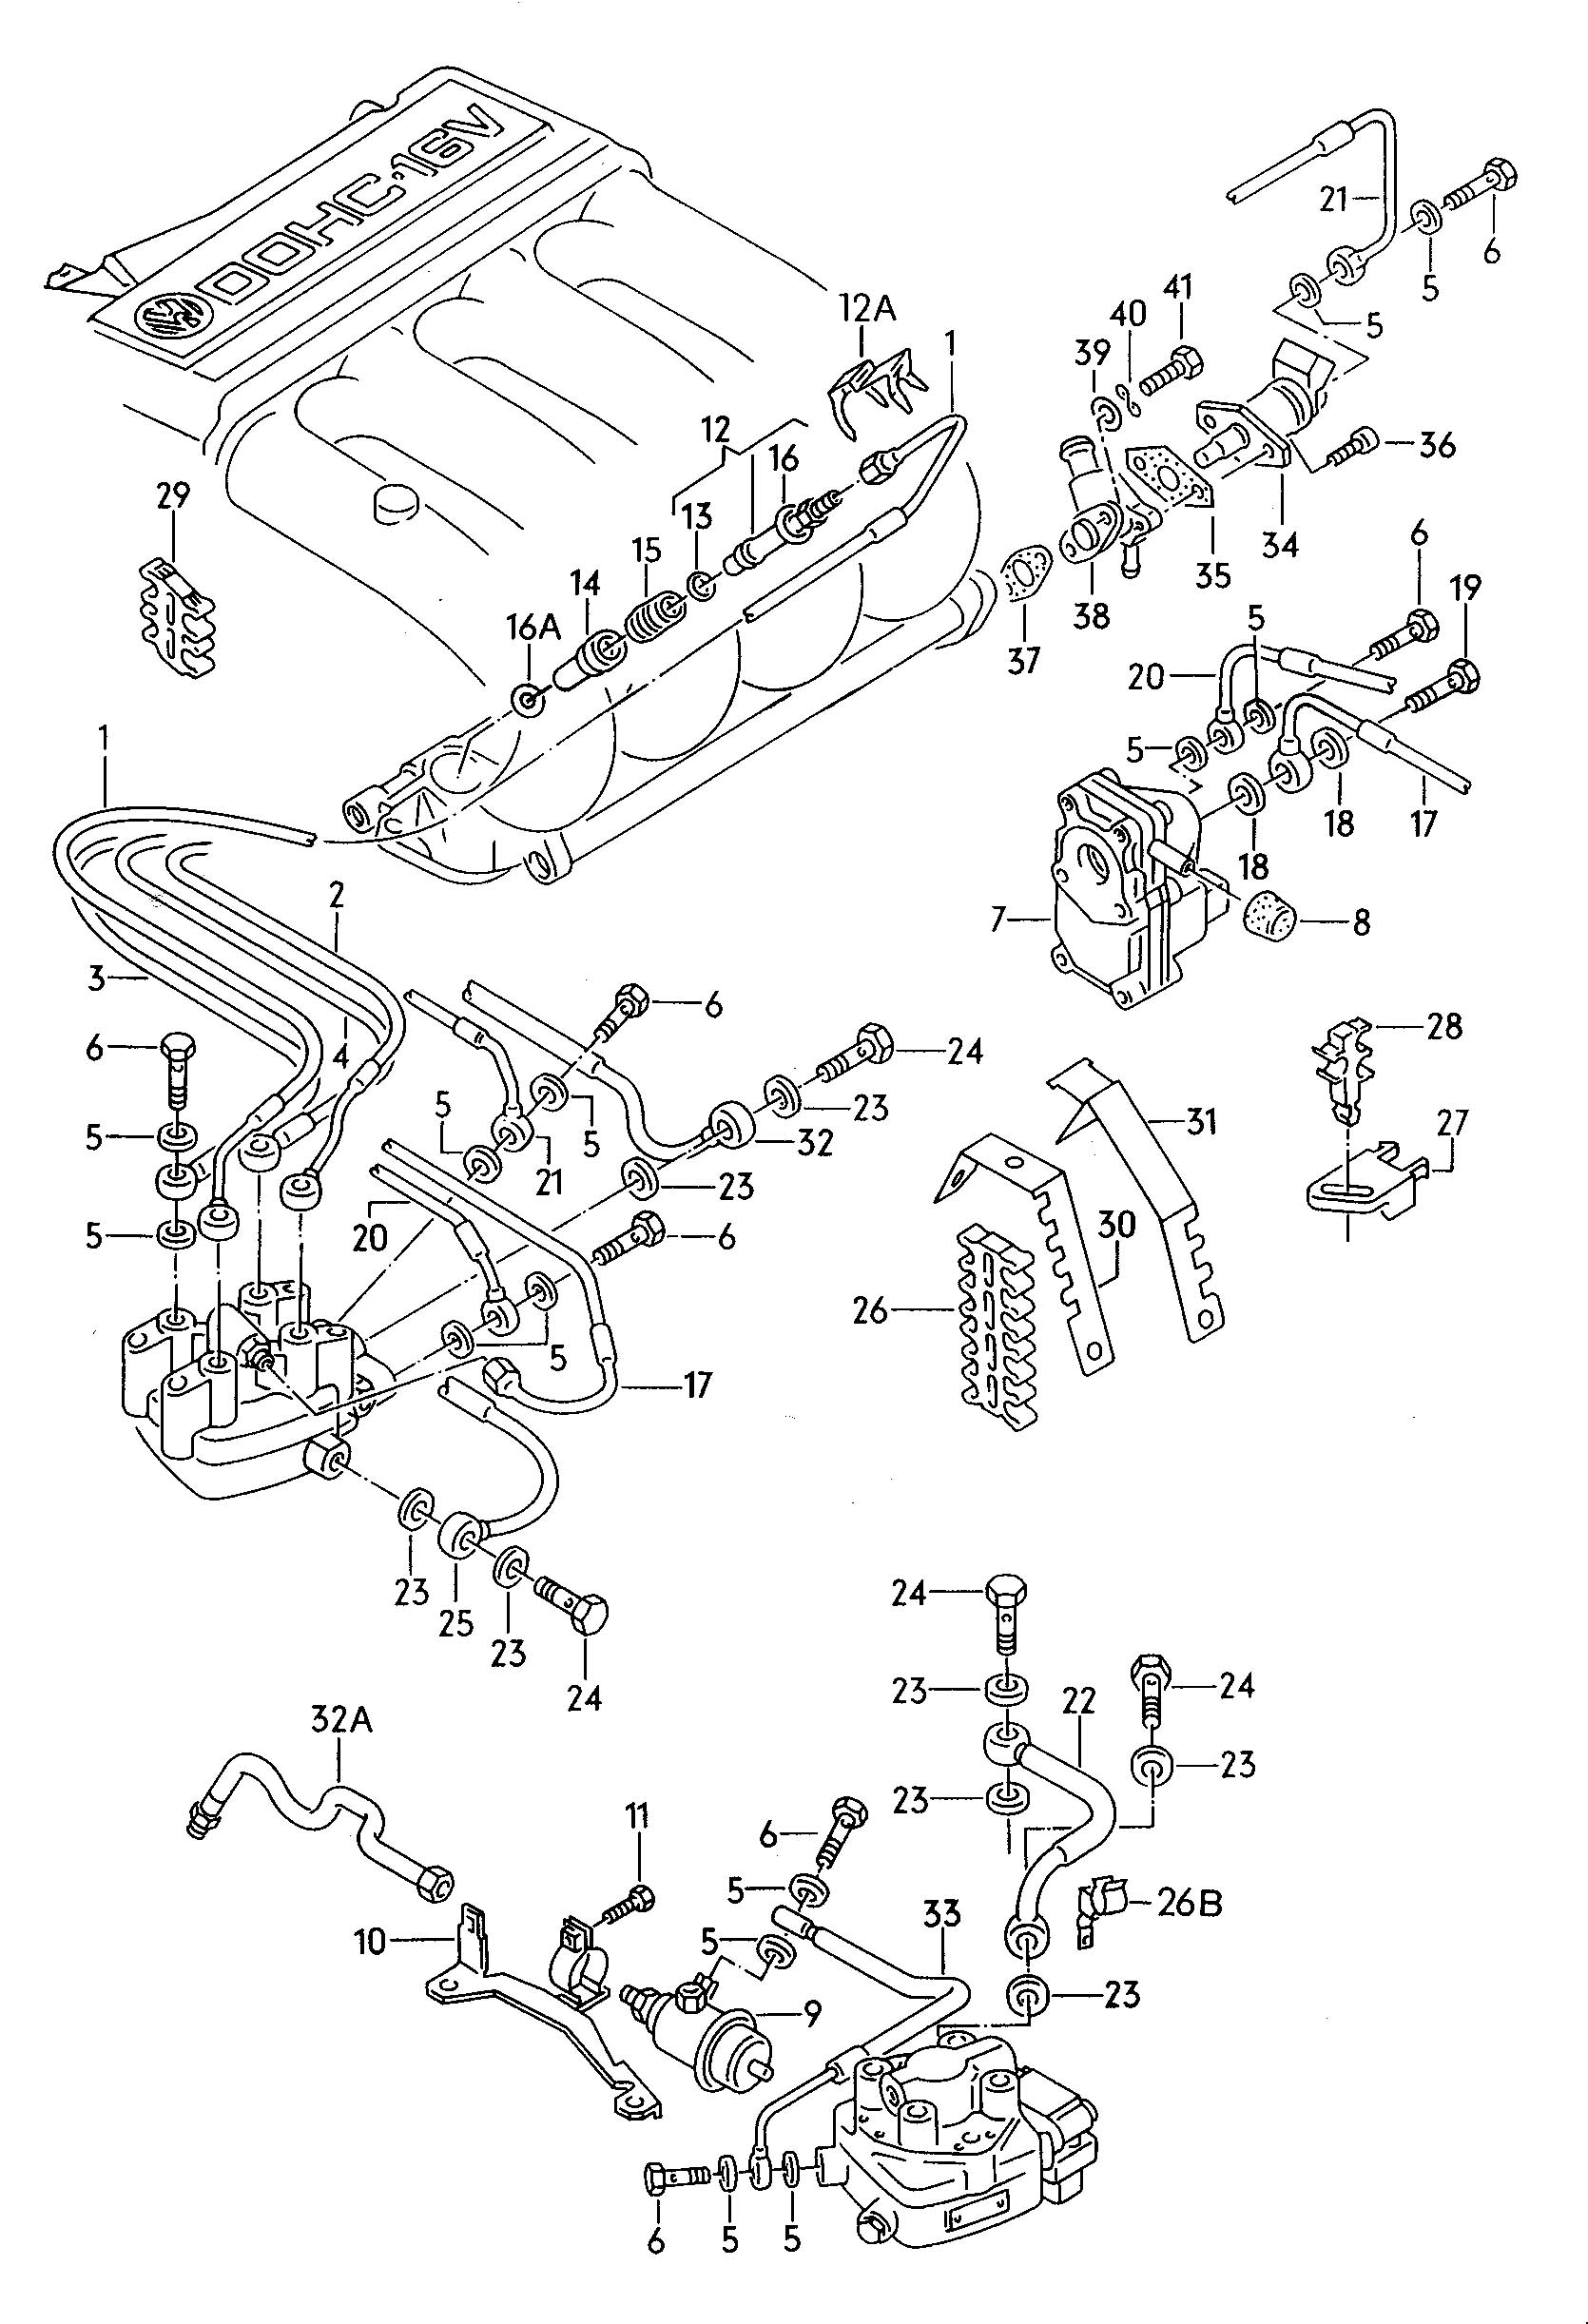 Wiring Manual PDF: 1600cc Vw Engine Diagram 1975